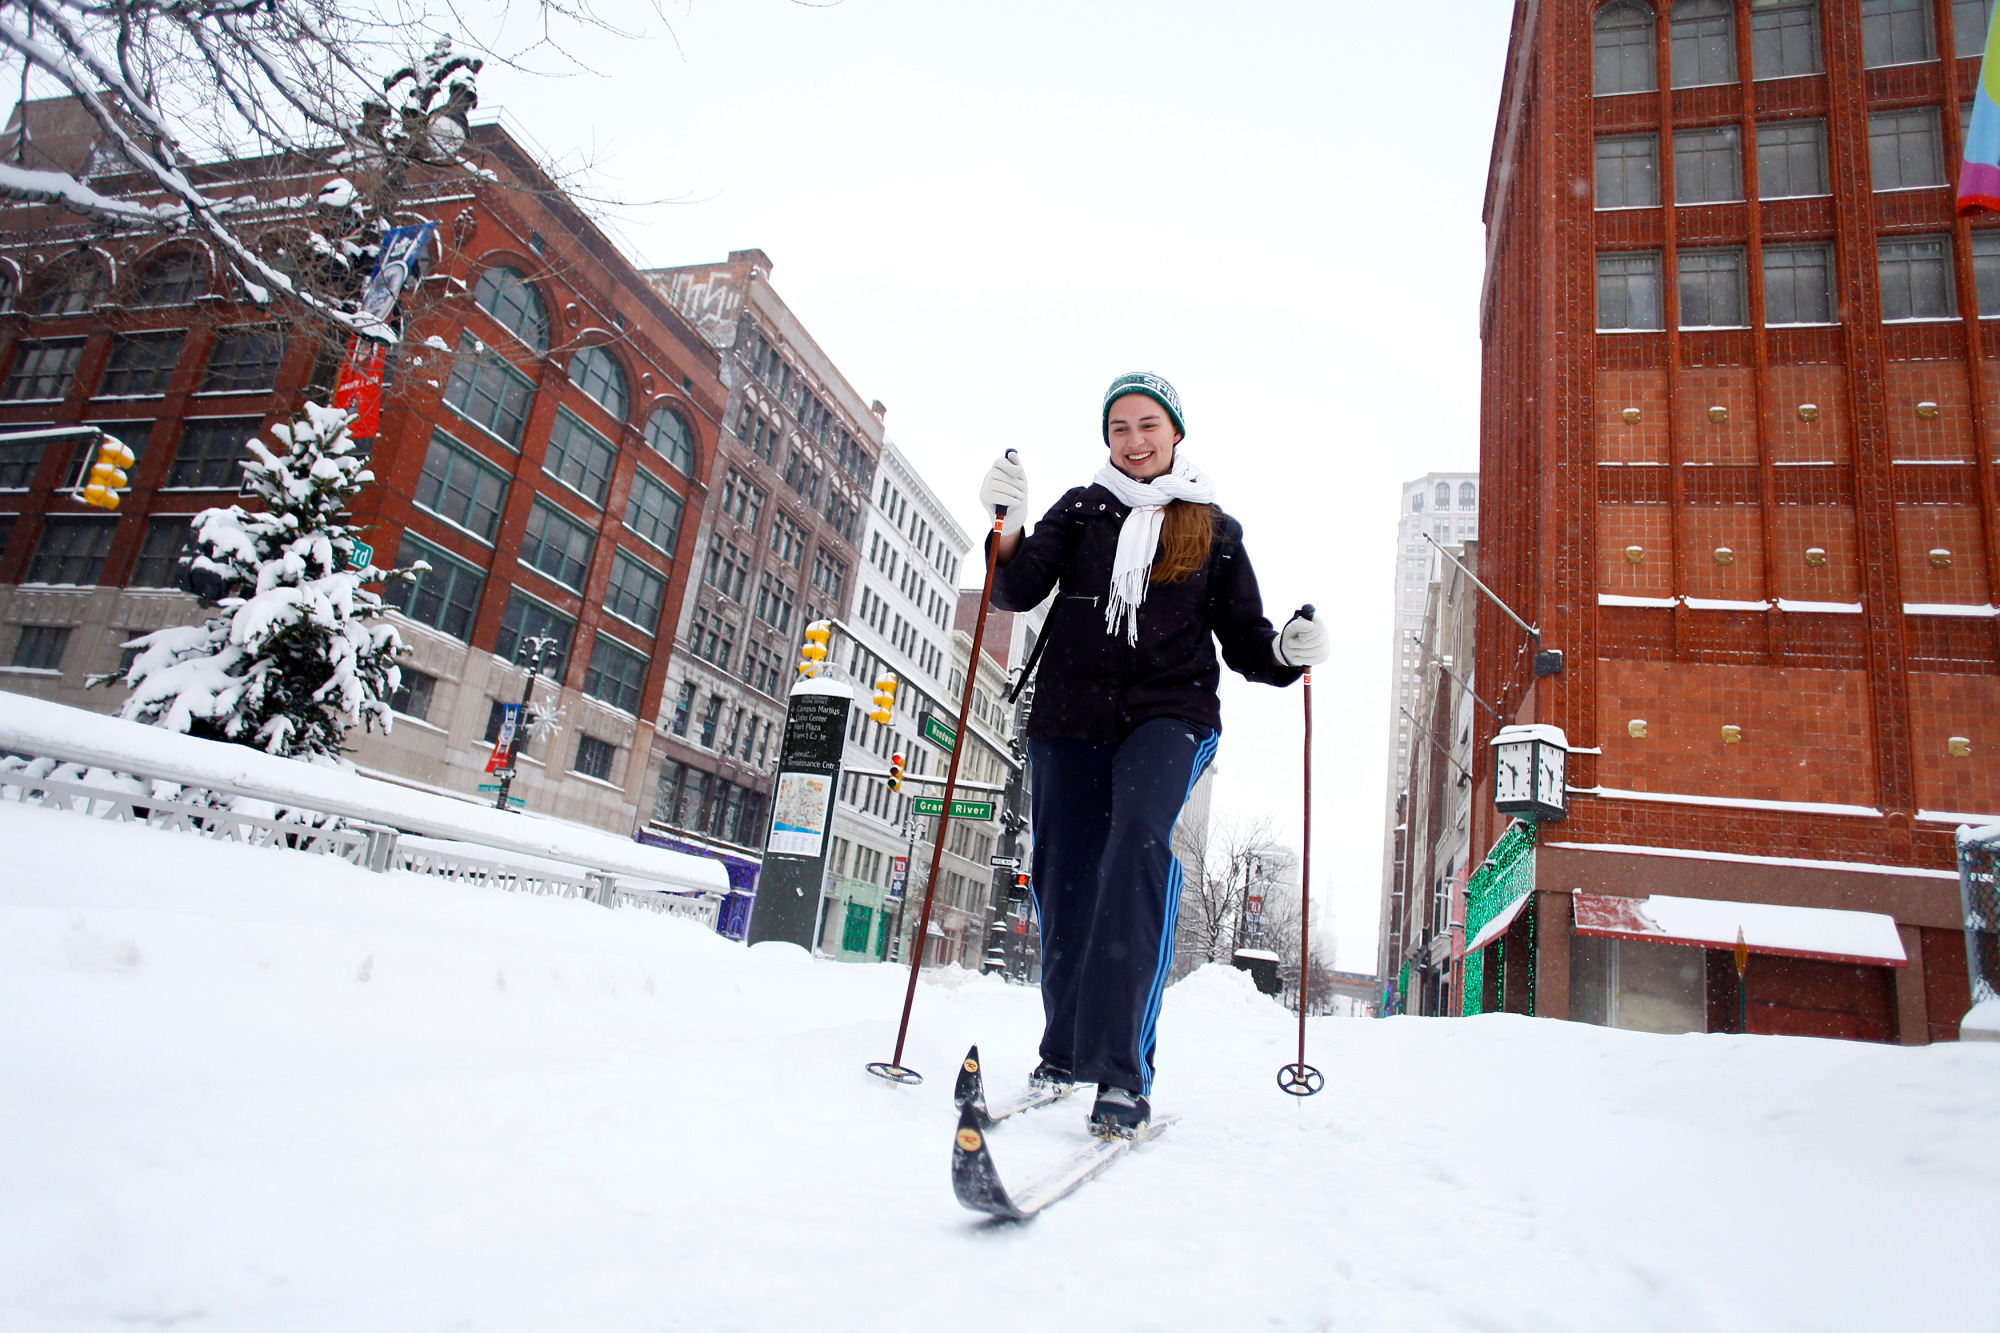 Alison Mueller skies to work through several inches of snow along Woodward Avenue as the area deals with record breaking freezing weather January 6, 2014 in Detroit, Michigan